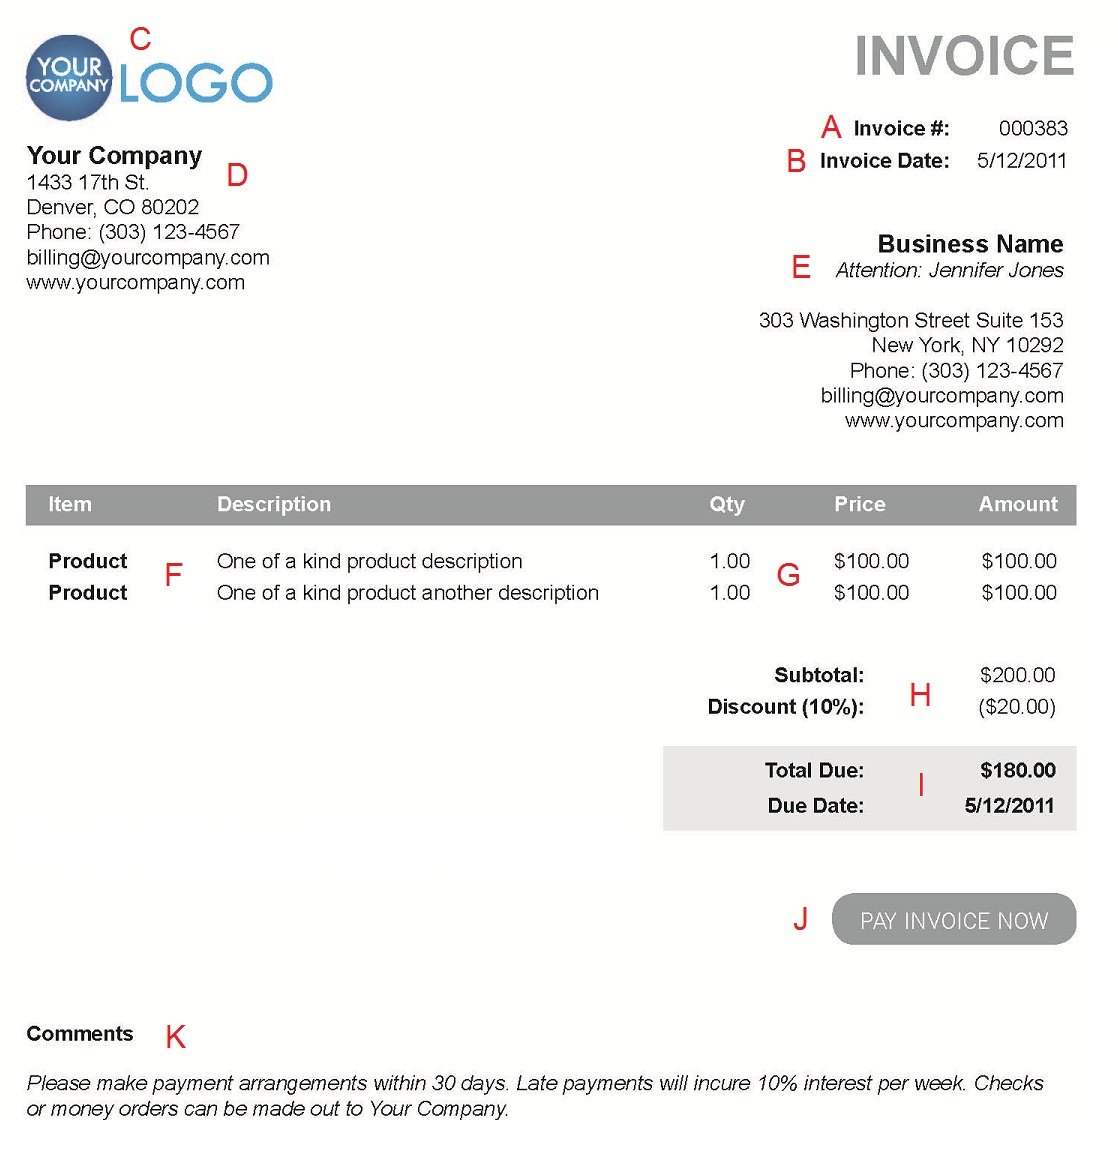 Centralasianshepherdus  Wonderful The  Different Sections Of An Electronic Payment Invoice With Gorgeous A  With Delectable Construction Invoice Template Also Invoice Receipt Template In Addition Invoices Free And Simple Invoice Template Word As Well As Custom Invoice Additionally Immigrant Visa Invoice Payment Center From Paysimplecom With Centralasianshepherdus  Gorgeous The  Different Sections Of An Electronic Payment Invoice With Delectable A  And Wonderful Construction Invoice Template Also Invoice Receipt Template In Addition Invoices Free From Paysimplecom